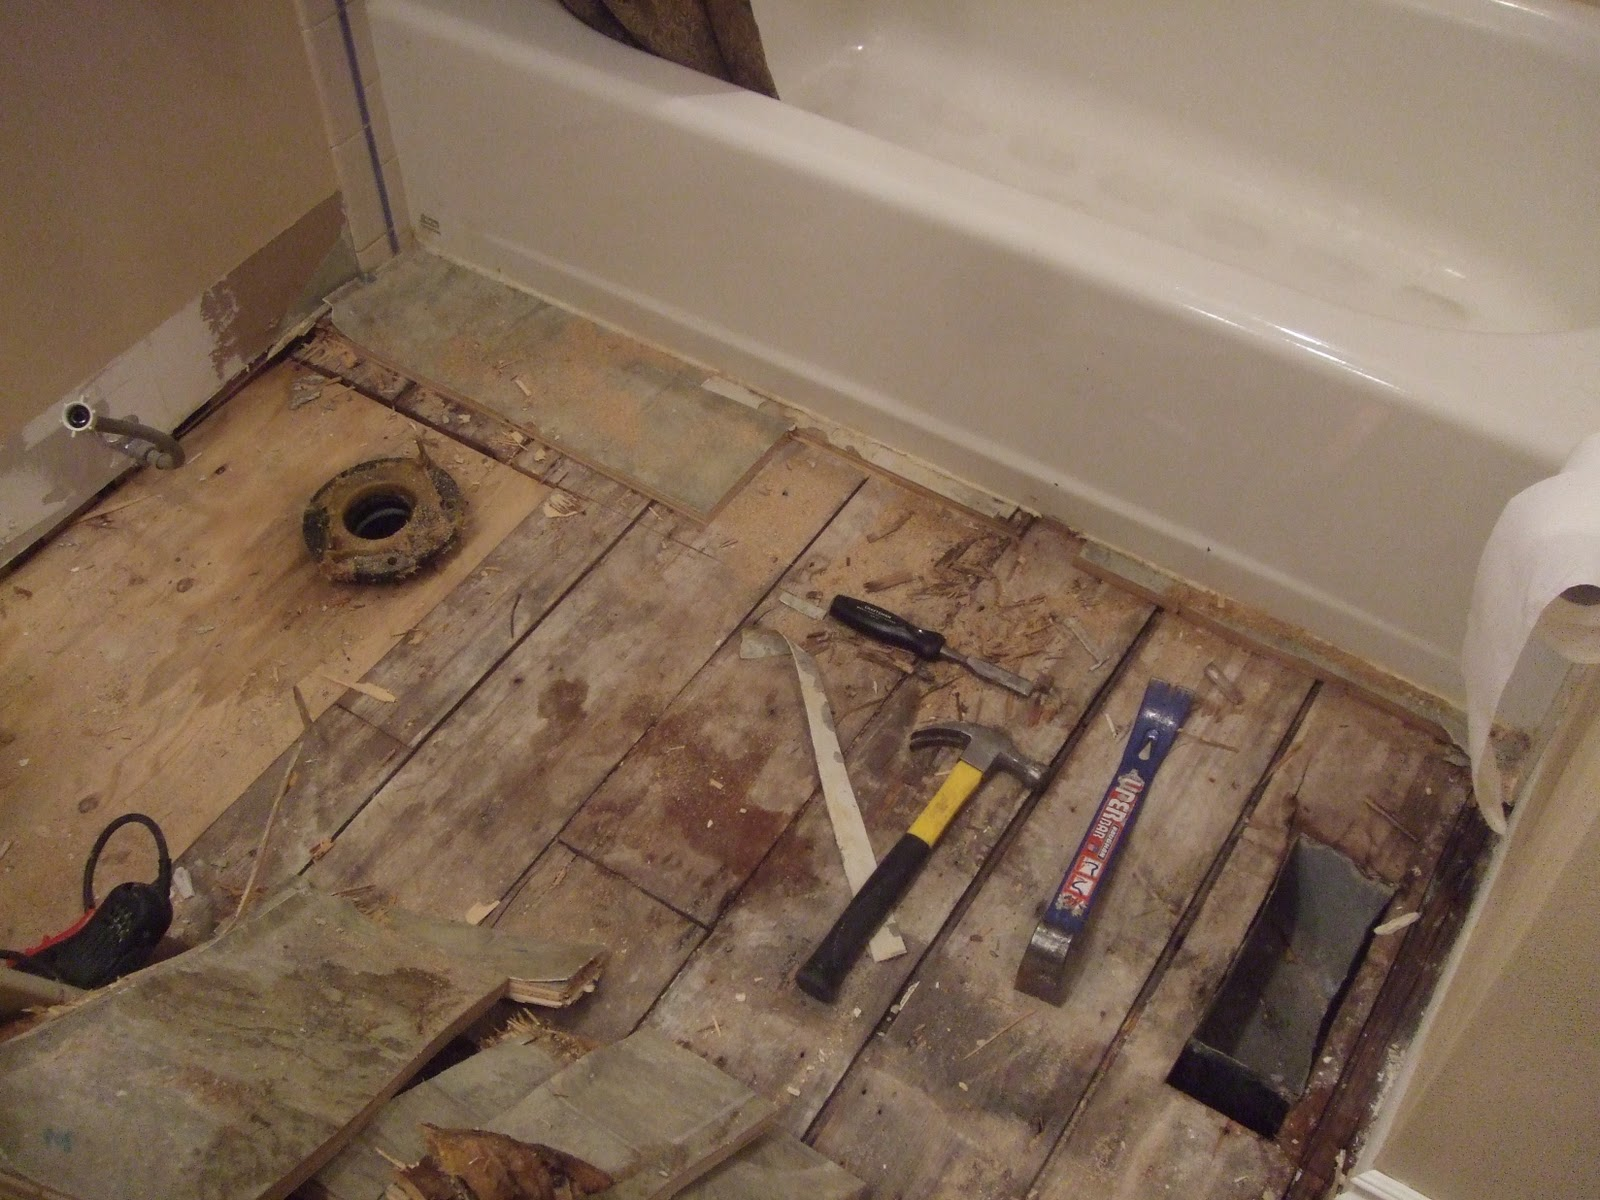 Laying wood flooring in bathroom 2015 best auto reviews for Laying wood flooring